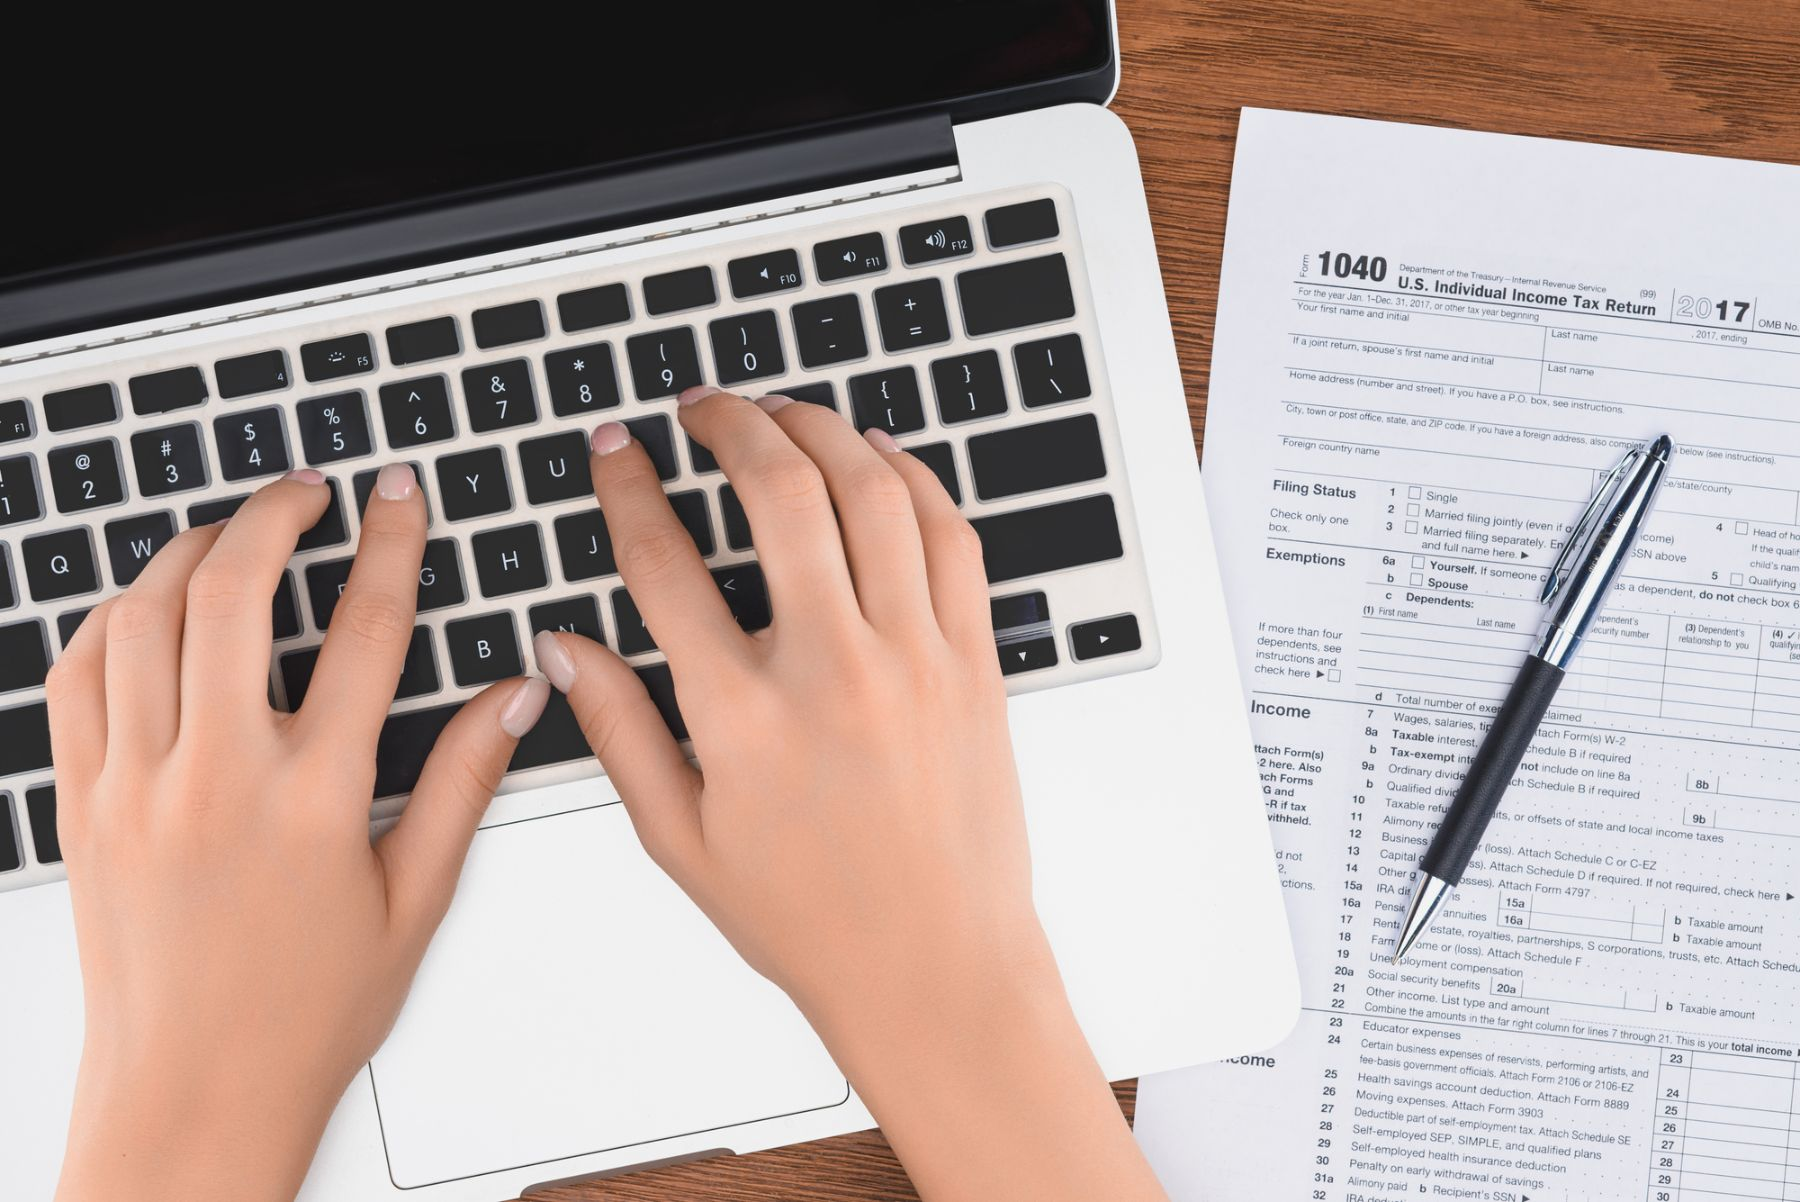 Hands typing on computer with 1040 tax form